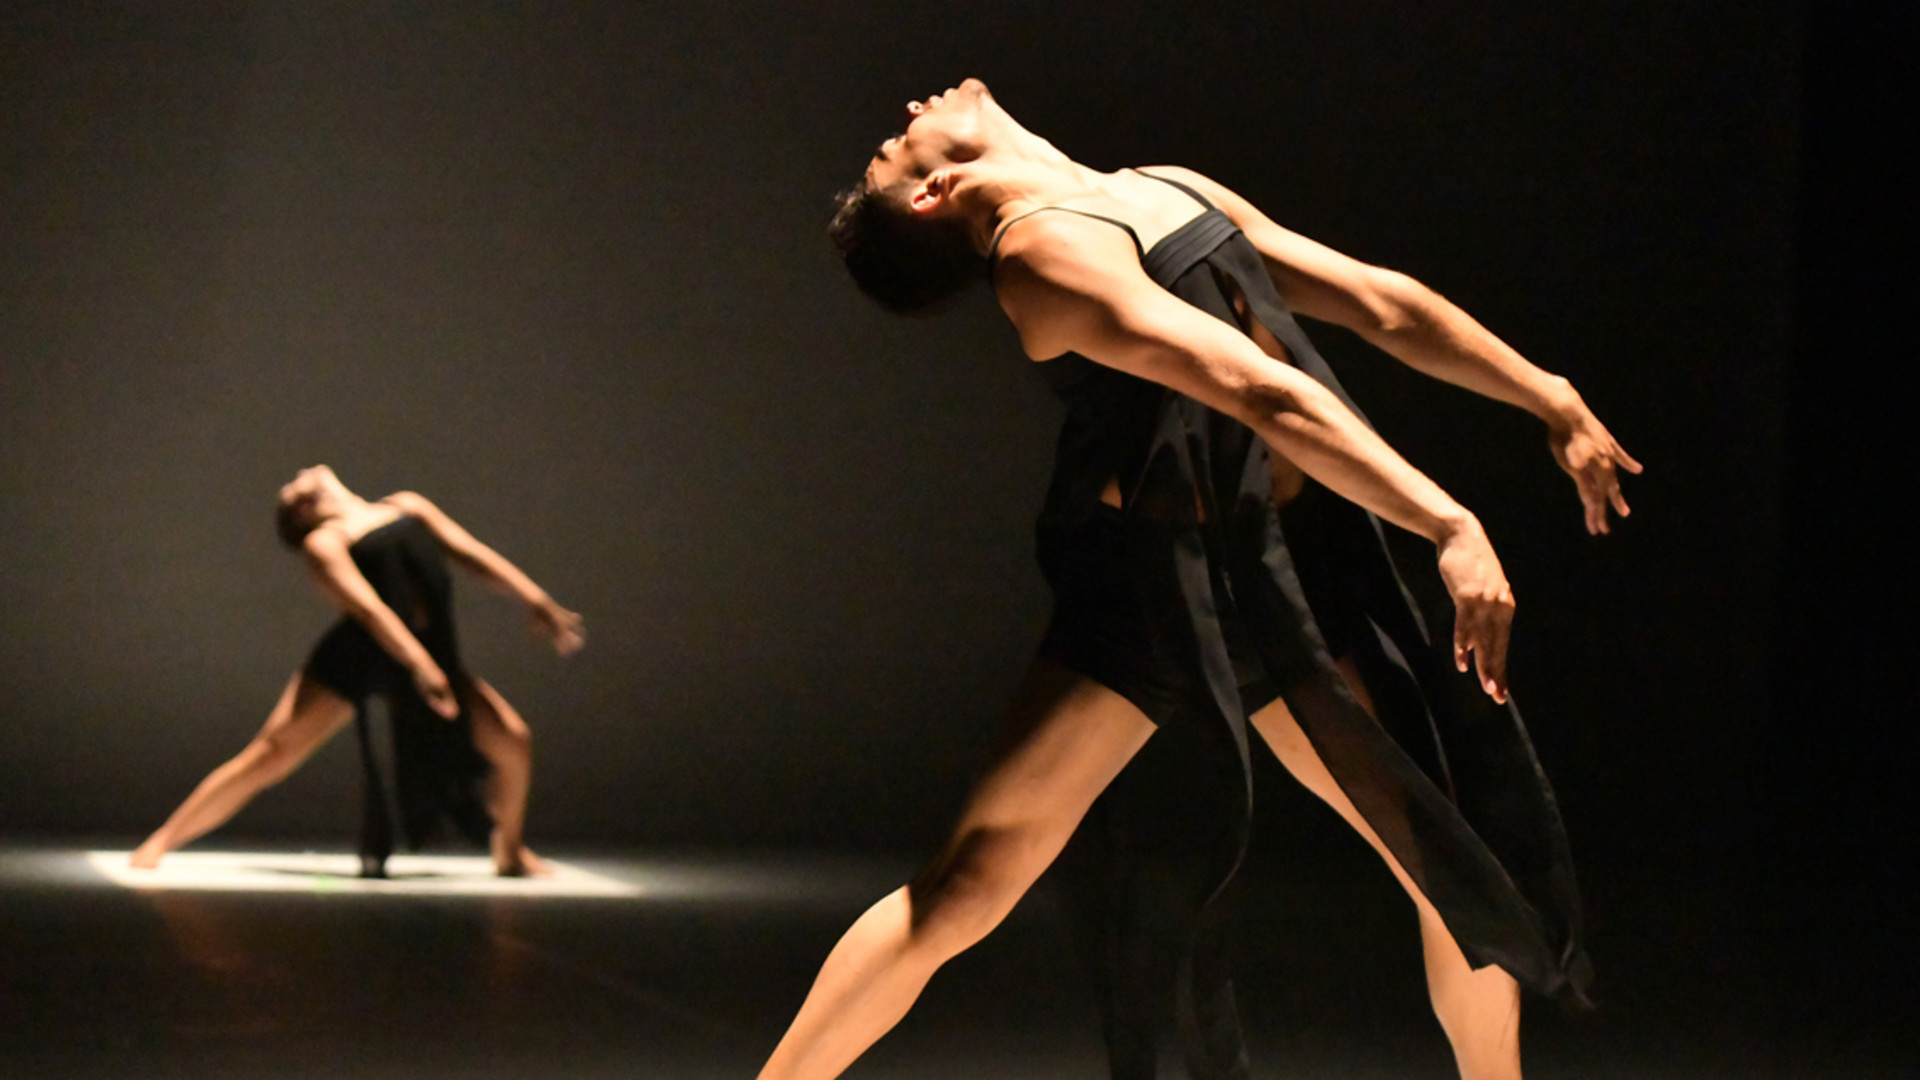 Two dancers on stage in spotlights. They are in a side lunge, arms outstretched and heads thrust back.